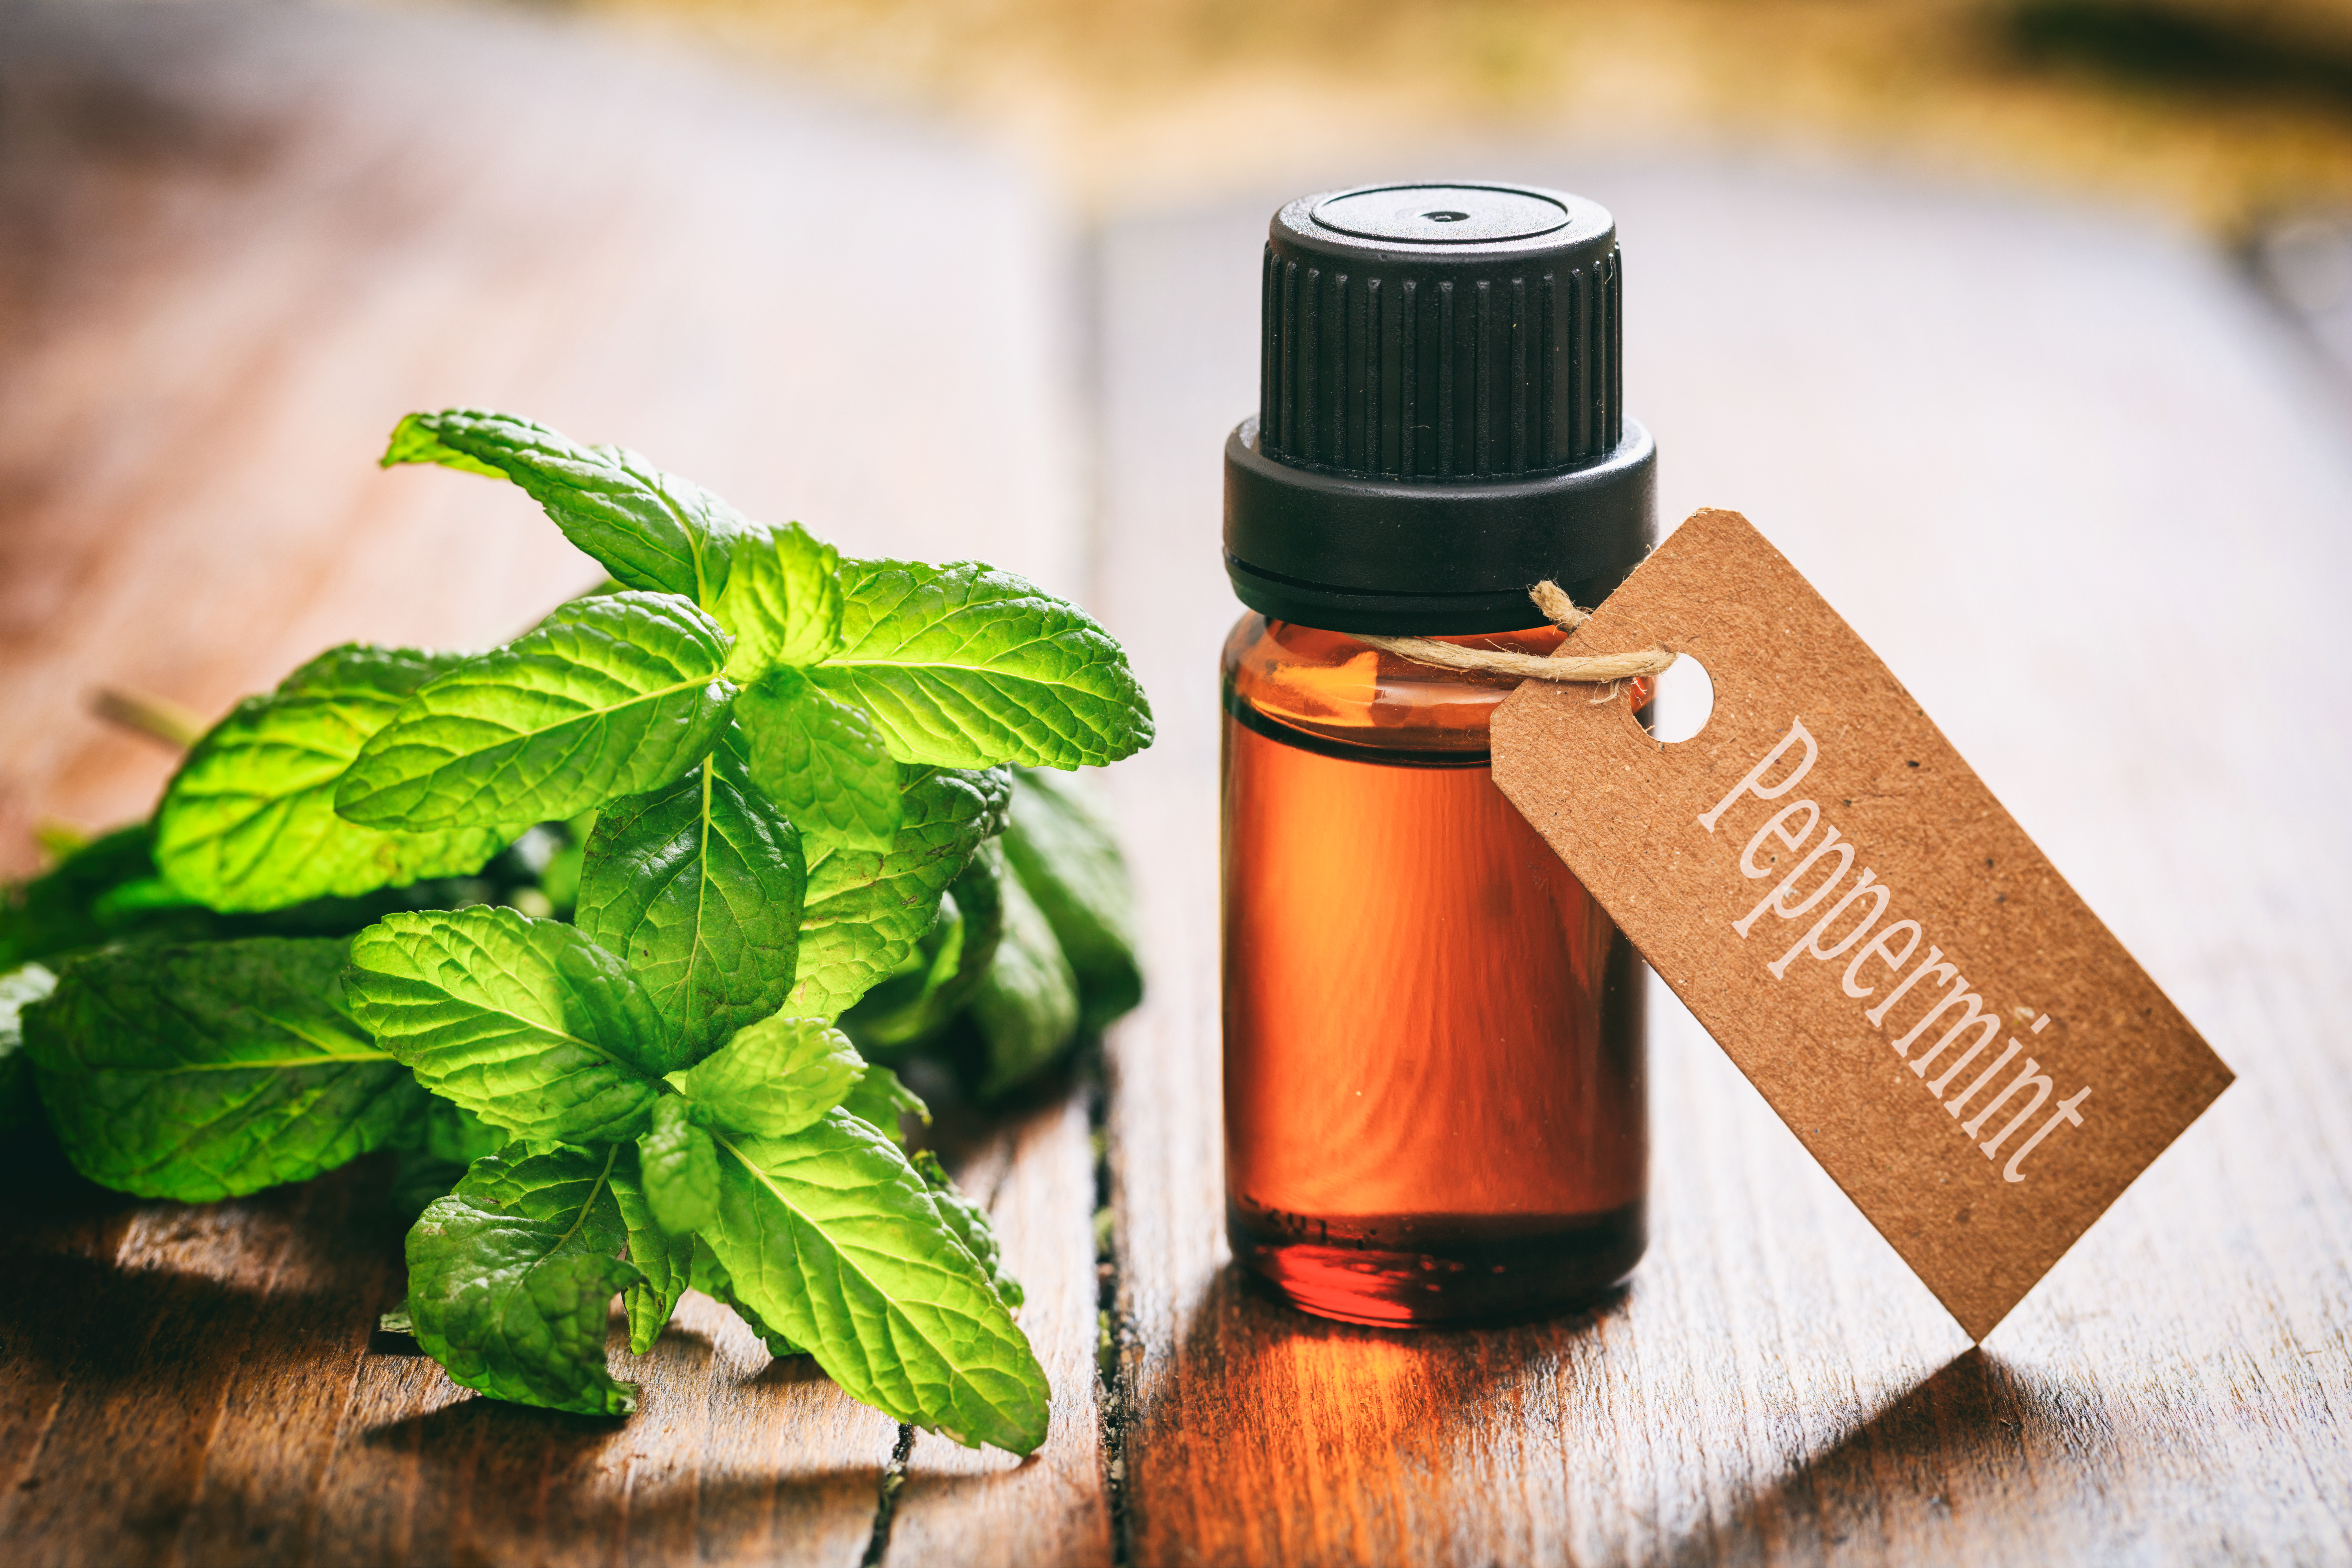 Ratio of Peppermint Oil to Water for Repelling Mice | Home Guides